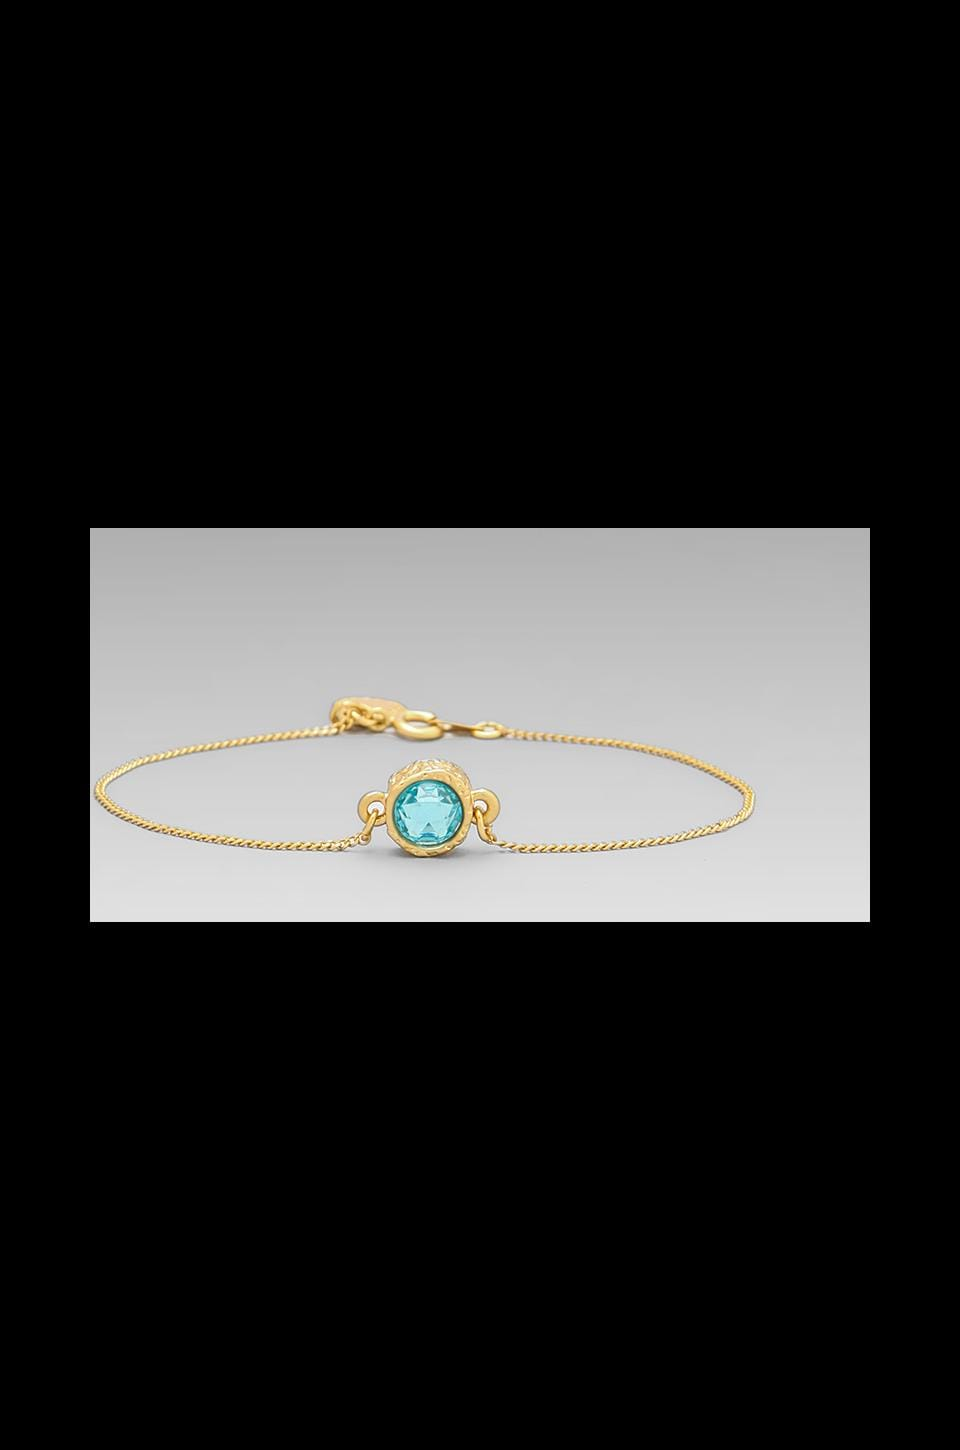 Marc by Marc Jacobs Tiny Crystal Bracelet in Aquamarine